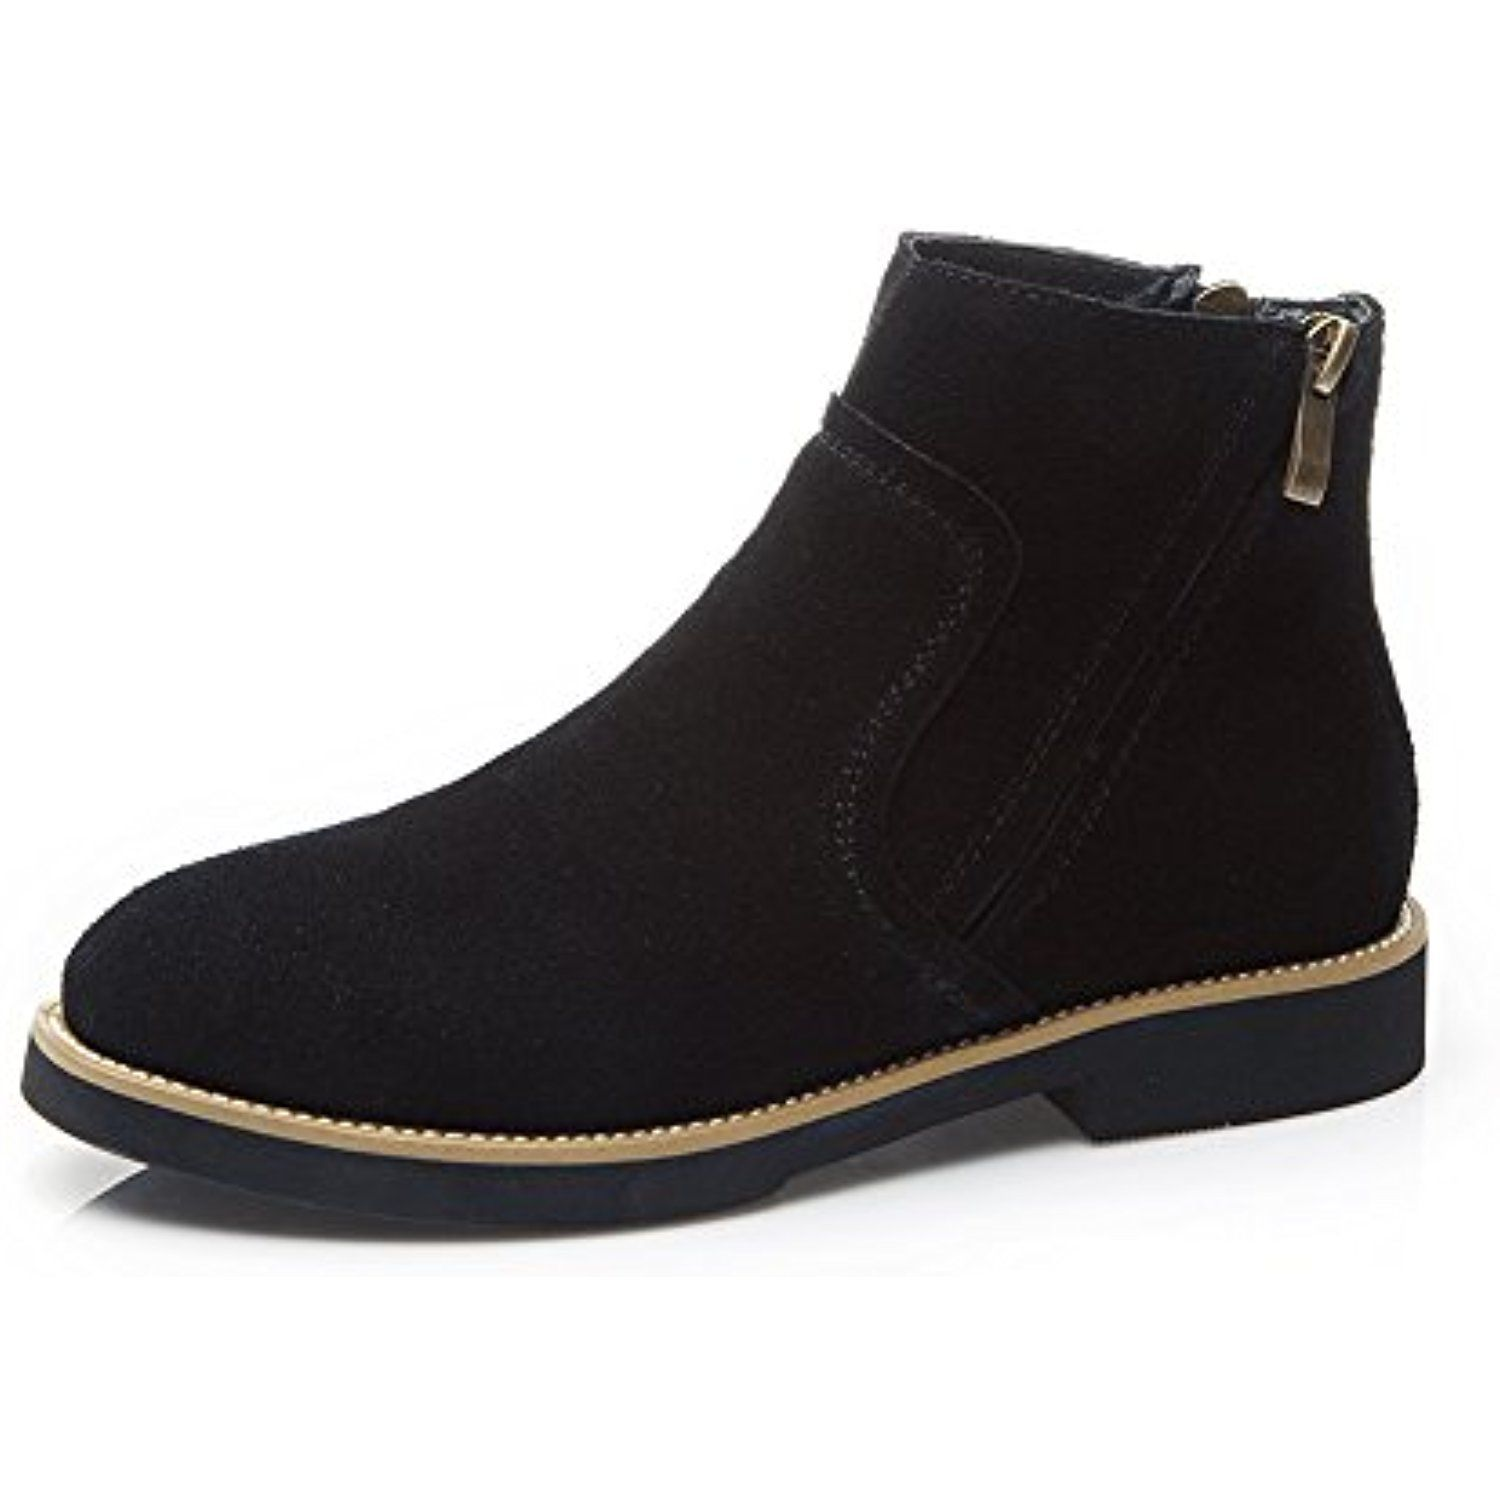 Women's Military Combat Slip On Ankle High Fashion Suede Boots SN268